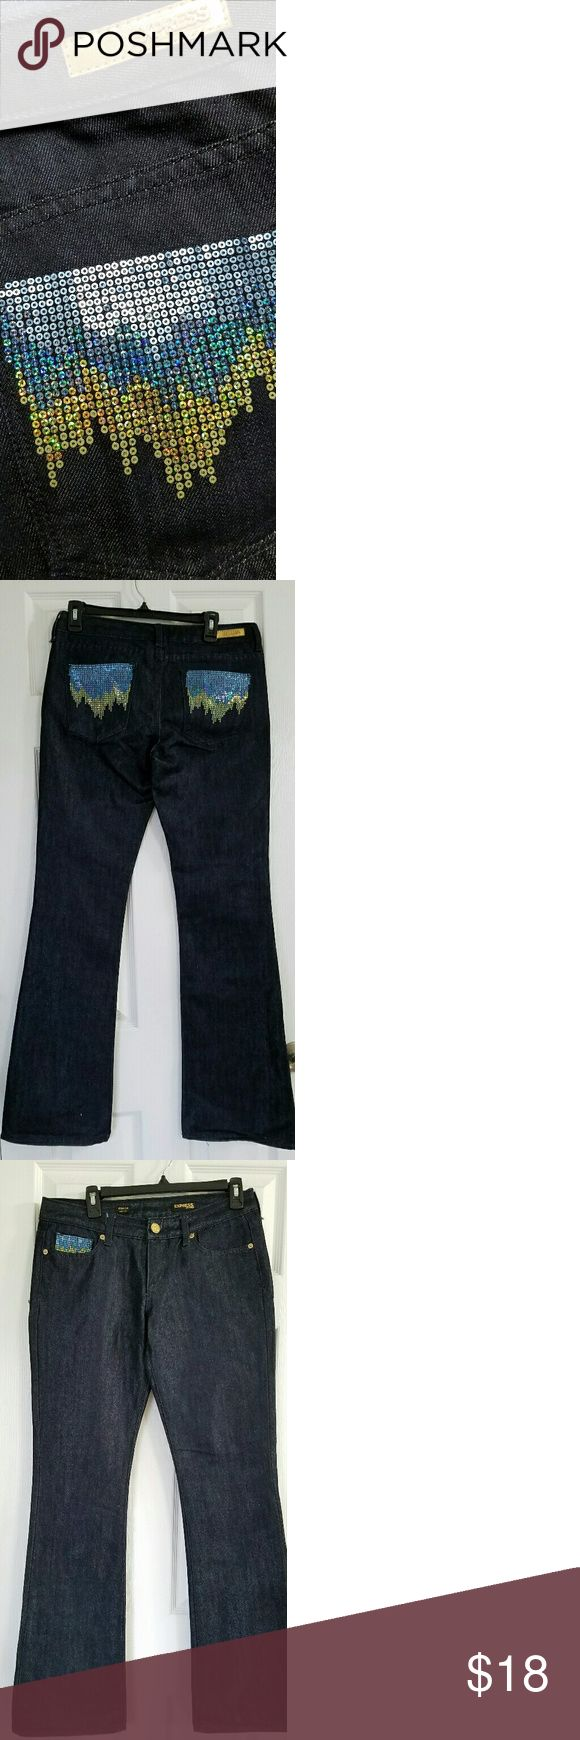 """Express Stella Bootleg jeans with sequins Express Stella Bootleg jeans with sequin pockets. Inseam 34"""" Bundle and save or make me an offer. Express  Jeans Boot Cut"""